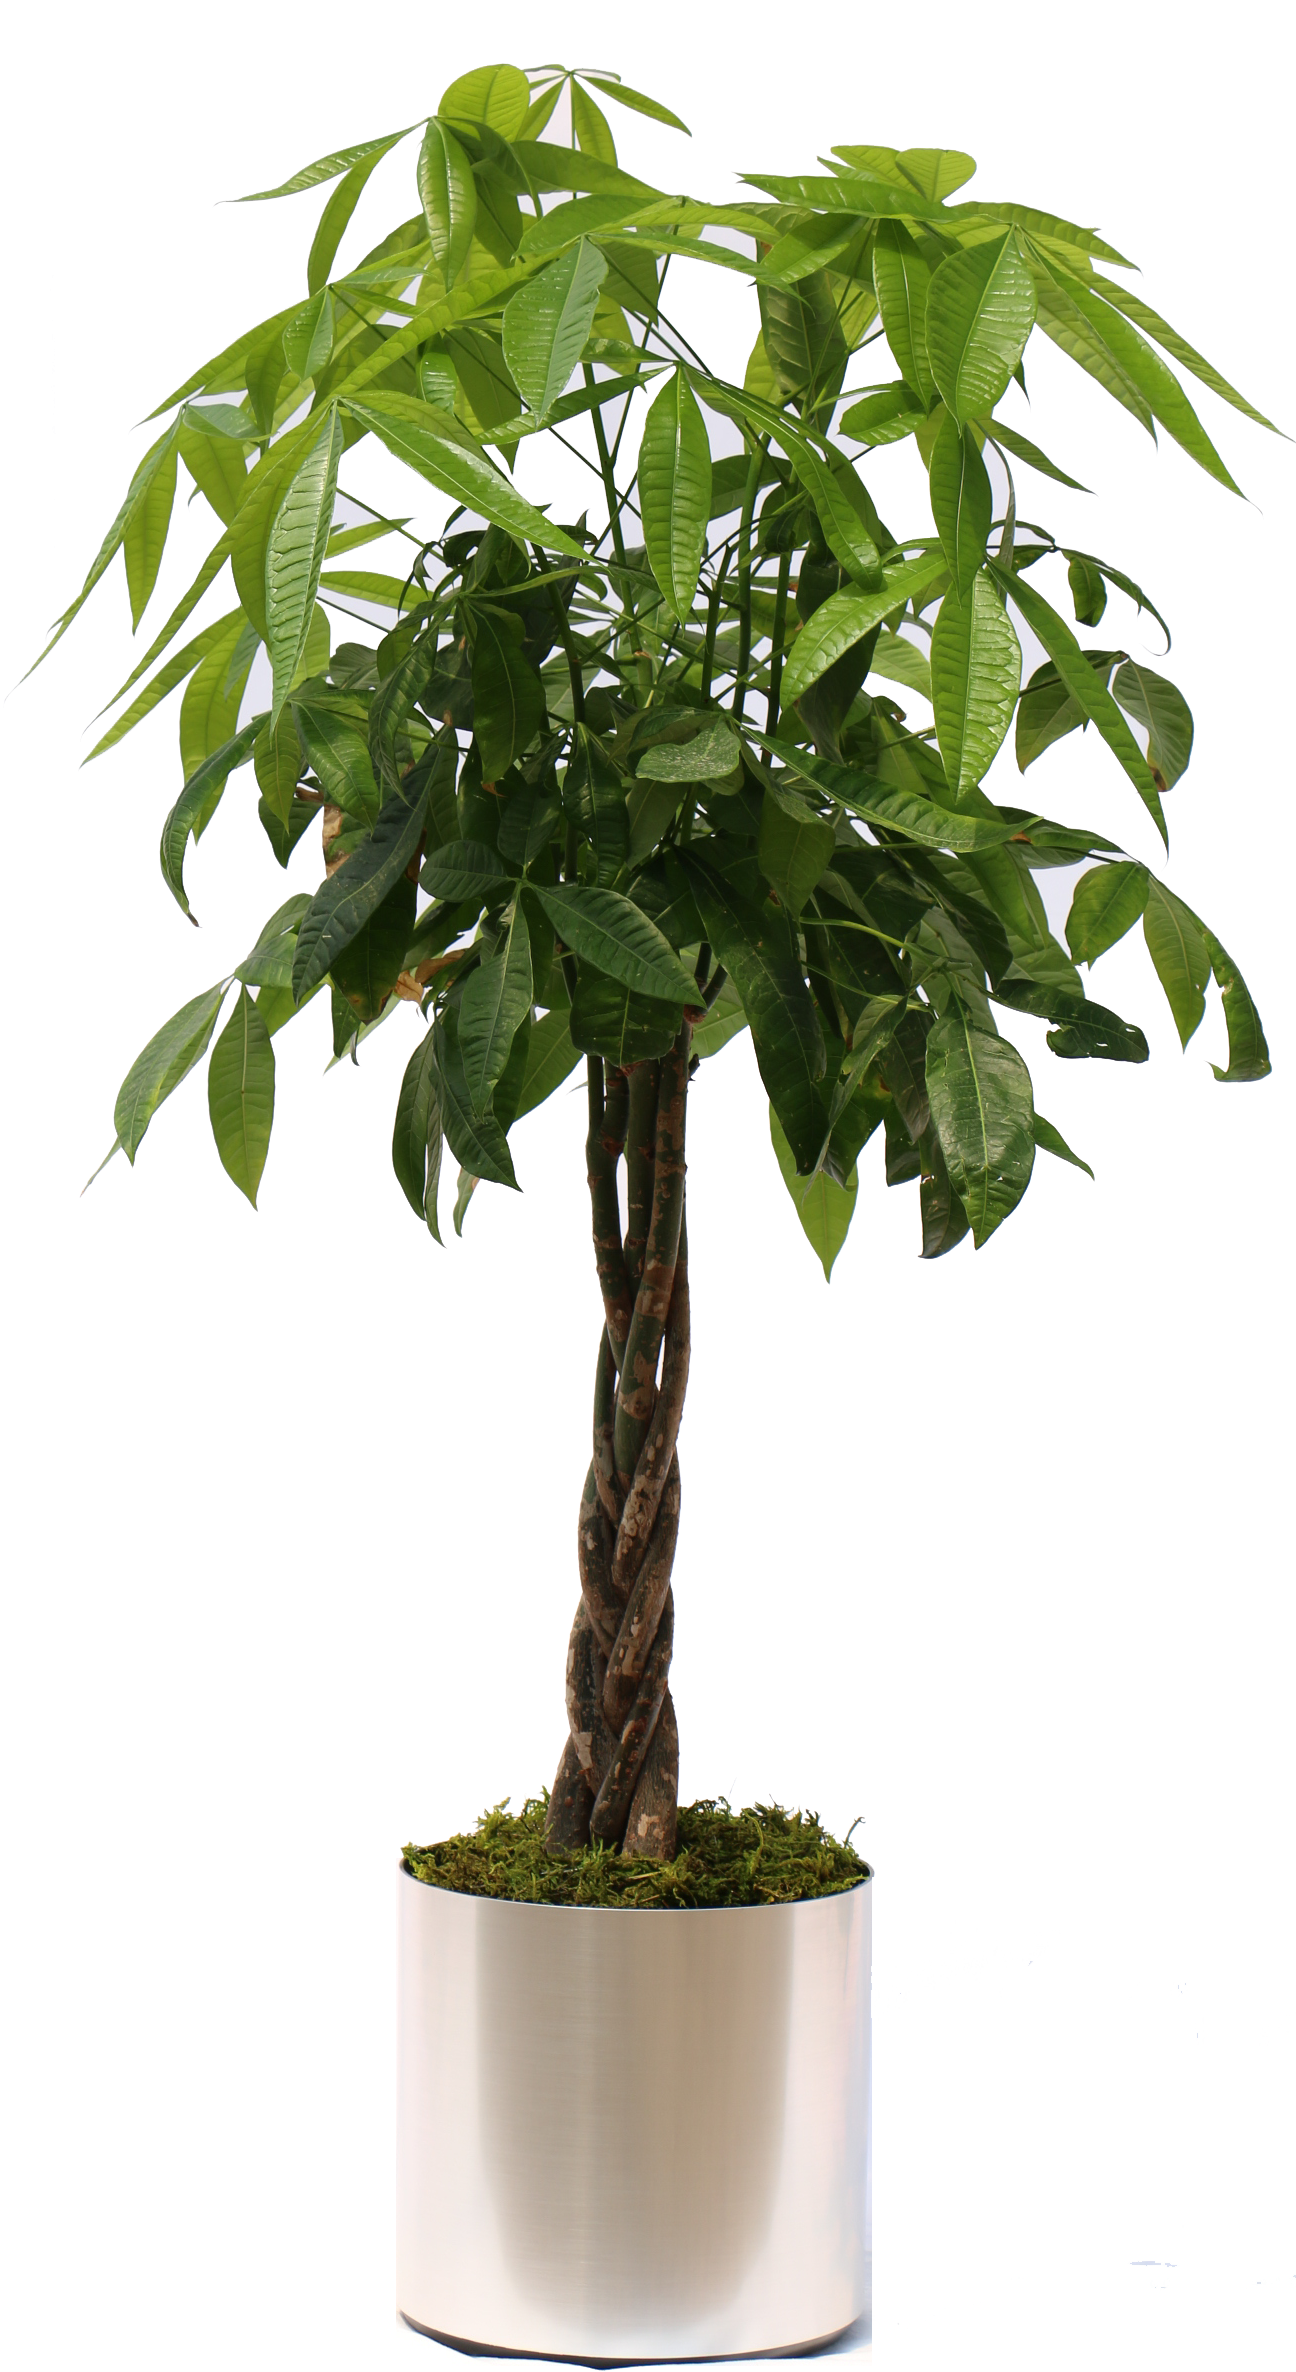 Hawaiian tropical plant sales. Money tree png